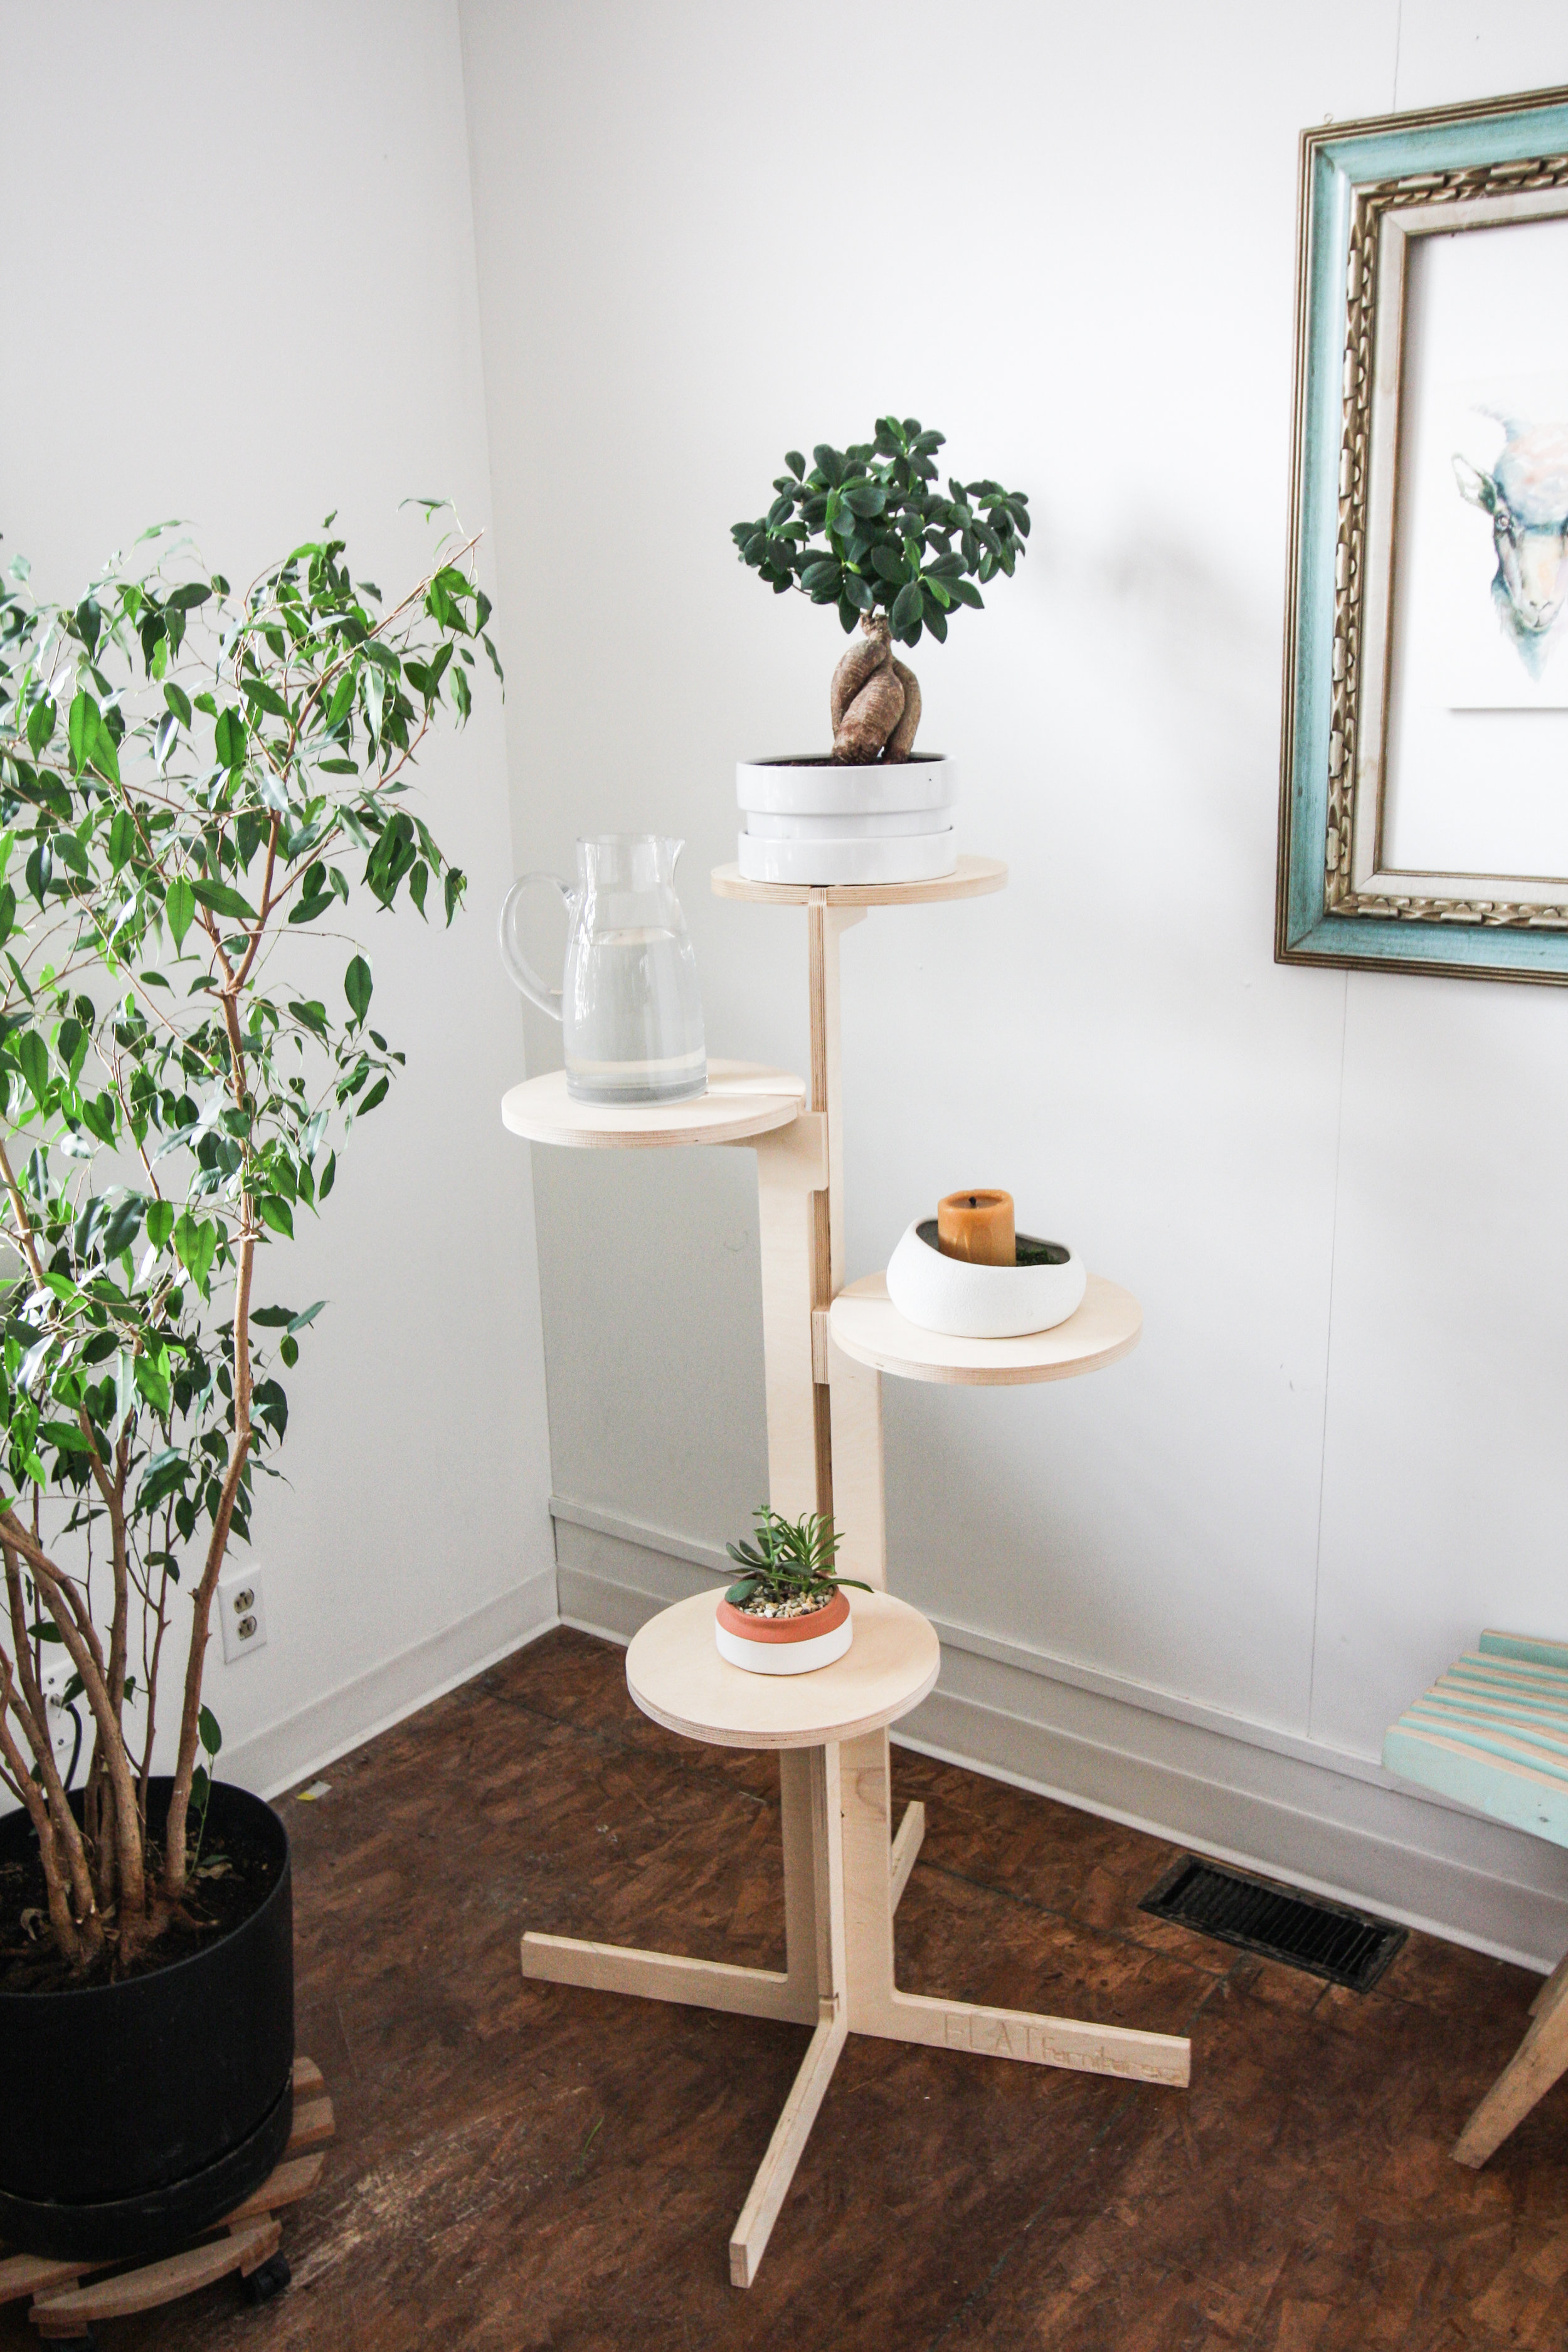 Don't have a cat? The perch can also be a plant holder or shelf system.